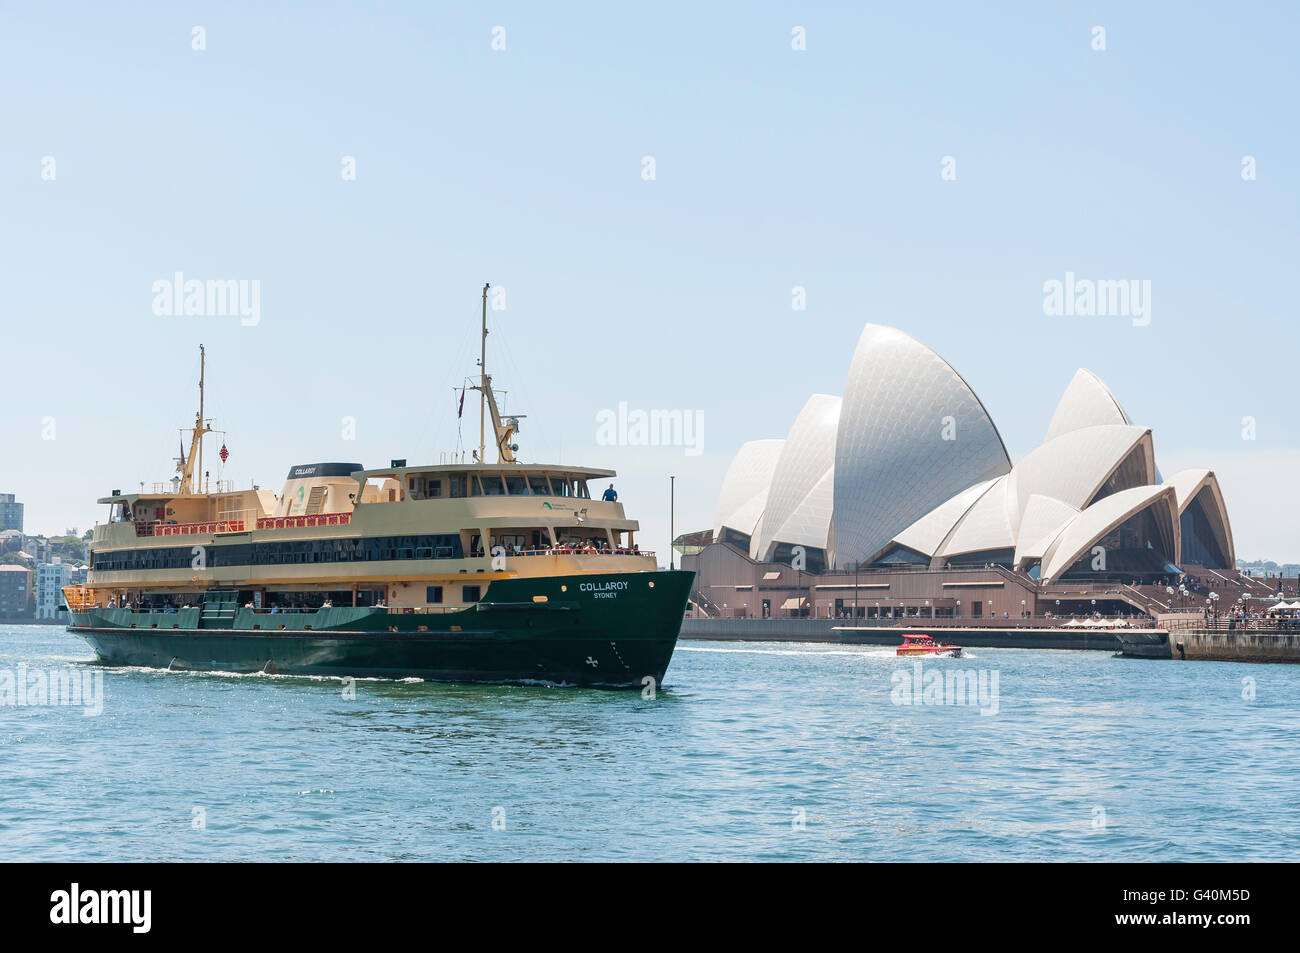 Sydney Ferries 'Collaroy' ship arriving at Circular Quay, Sydney Harbour, Sydney, New South Wales, Australia - Stock Image